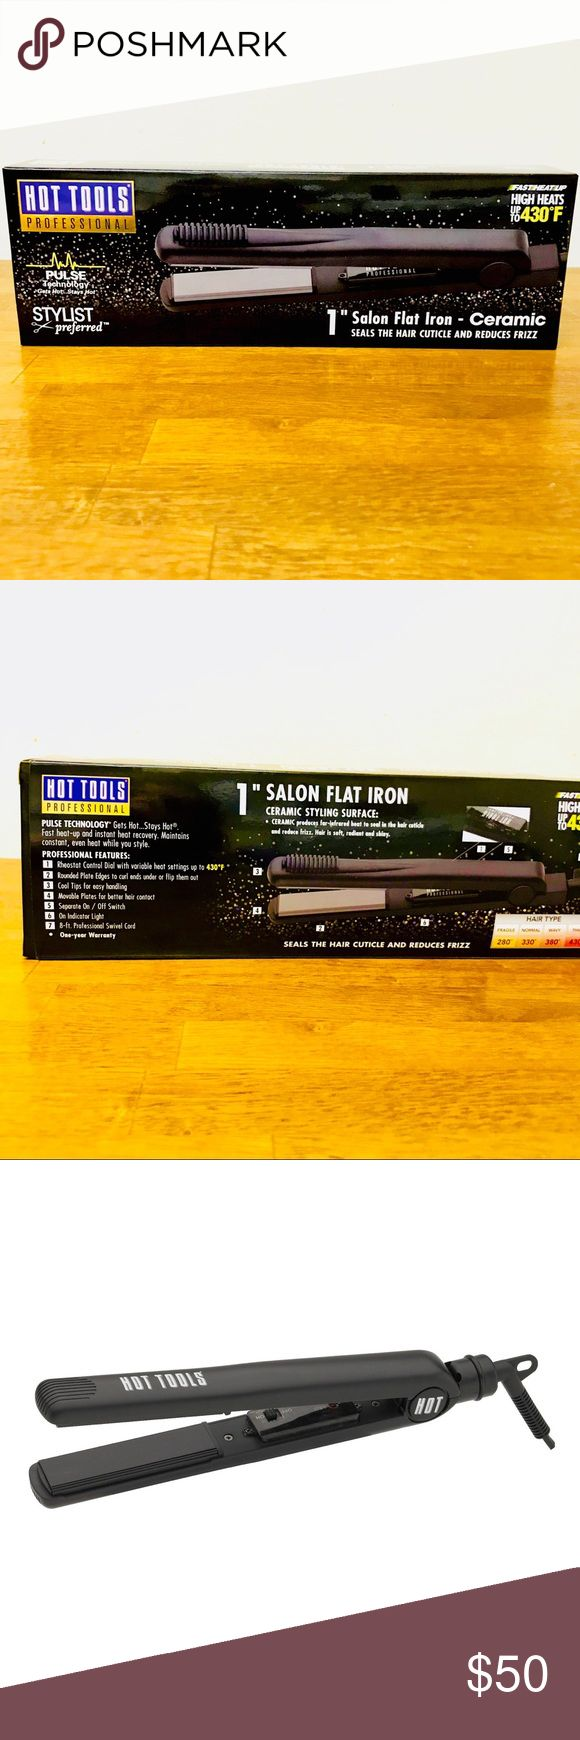 """🔥NEW! Hot Tools Ceramic 1"""" Flatiron!🔥 Brand new hair straightener from Hot Tools! Features nanoceramic technology for heat that is more gentle on hair and eliminates frizz for a shiny, healthy finish! Pulse technology makes it get hot & sense when heat is lost and immediately restores it so it stays hot! 1"""" plates. Retail price: 69.99! All reasonable offers considered when made using the offer button and closet discount applied to bundles! Hot Tools Accessories Hair Accessories"""